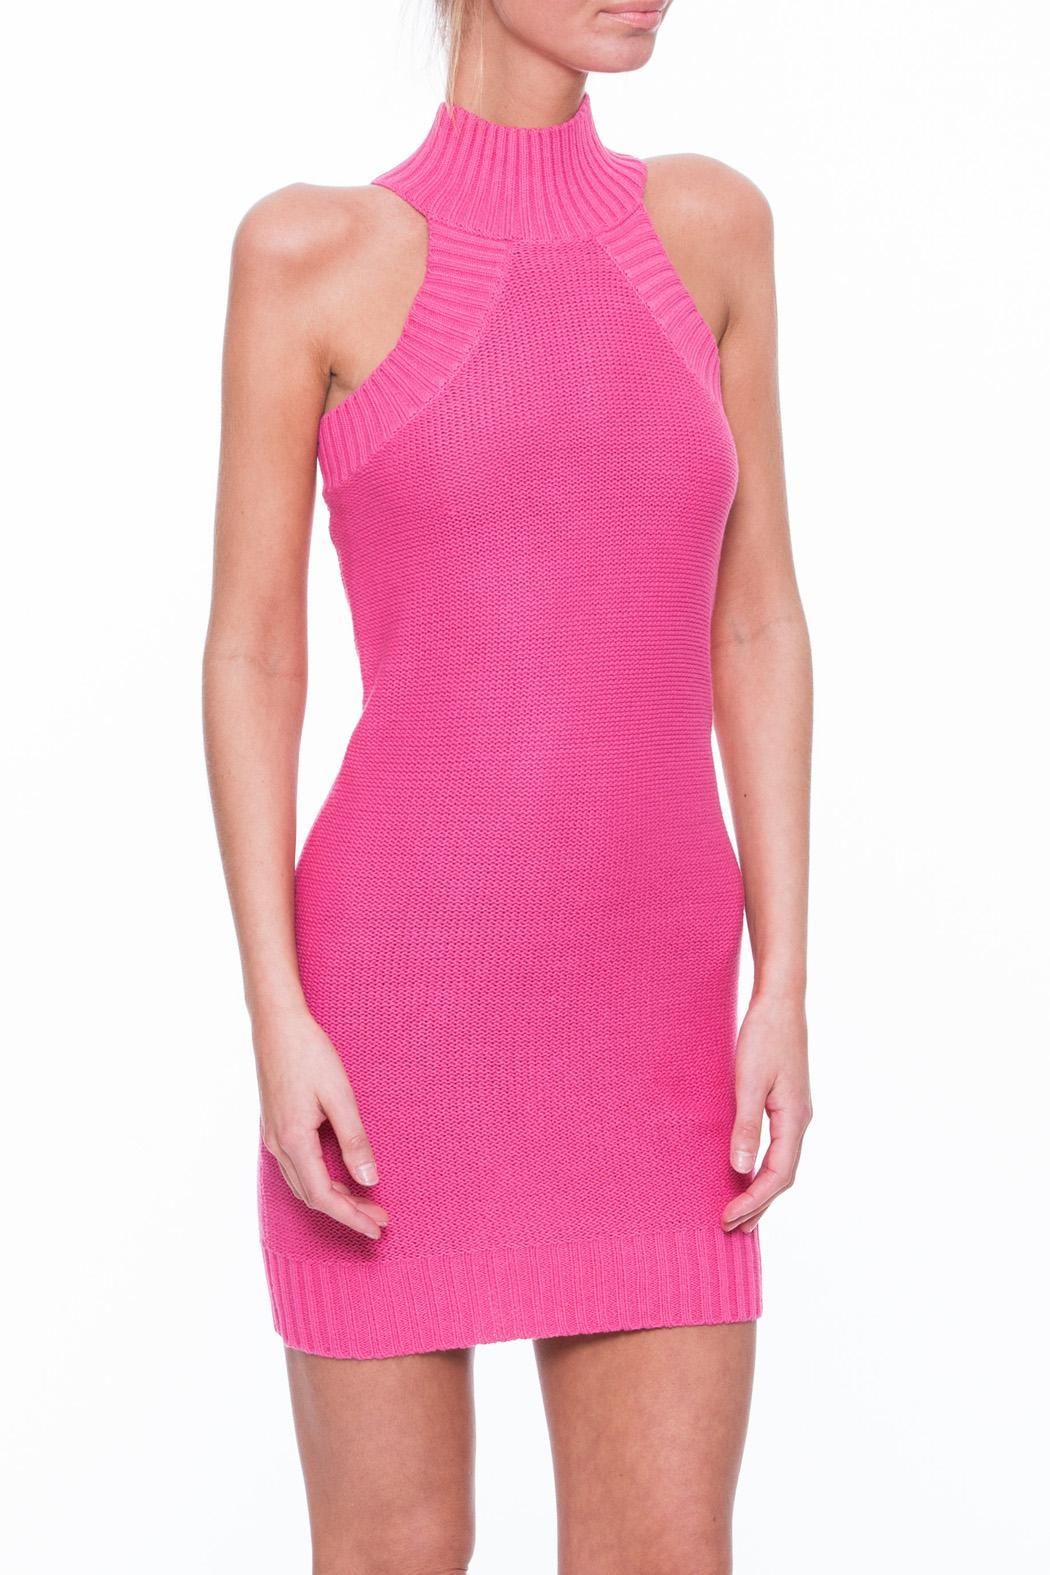 Uniq Pink Sweater Dress from South Carolina by Current Society ...